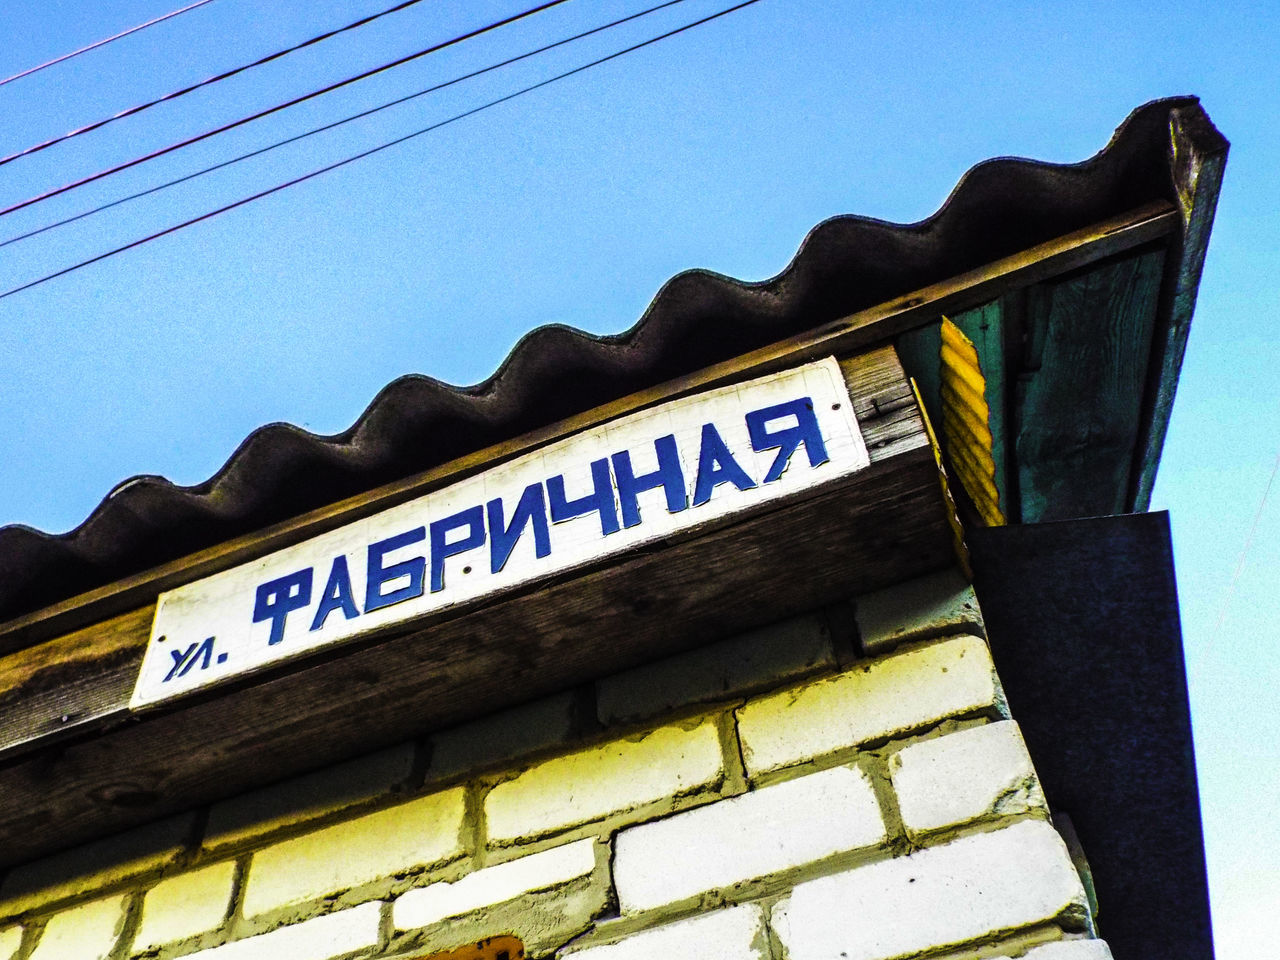 Street Text улица Low Angle View Built Structure Architecture Building Exterior Day Communication Outdoors No People Sky Clear Sky Blue Close-up текст табличка